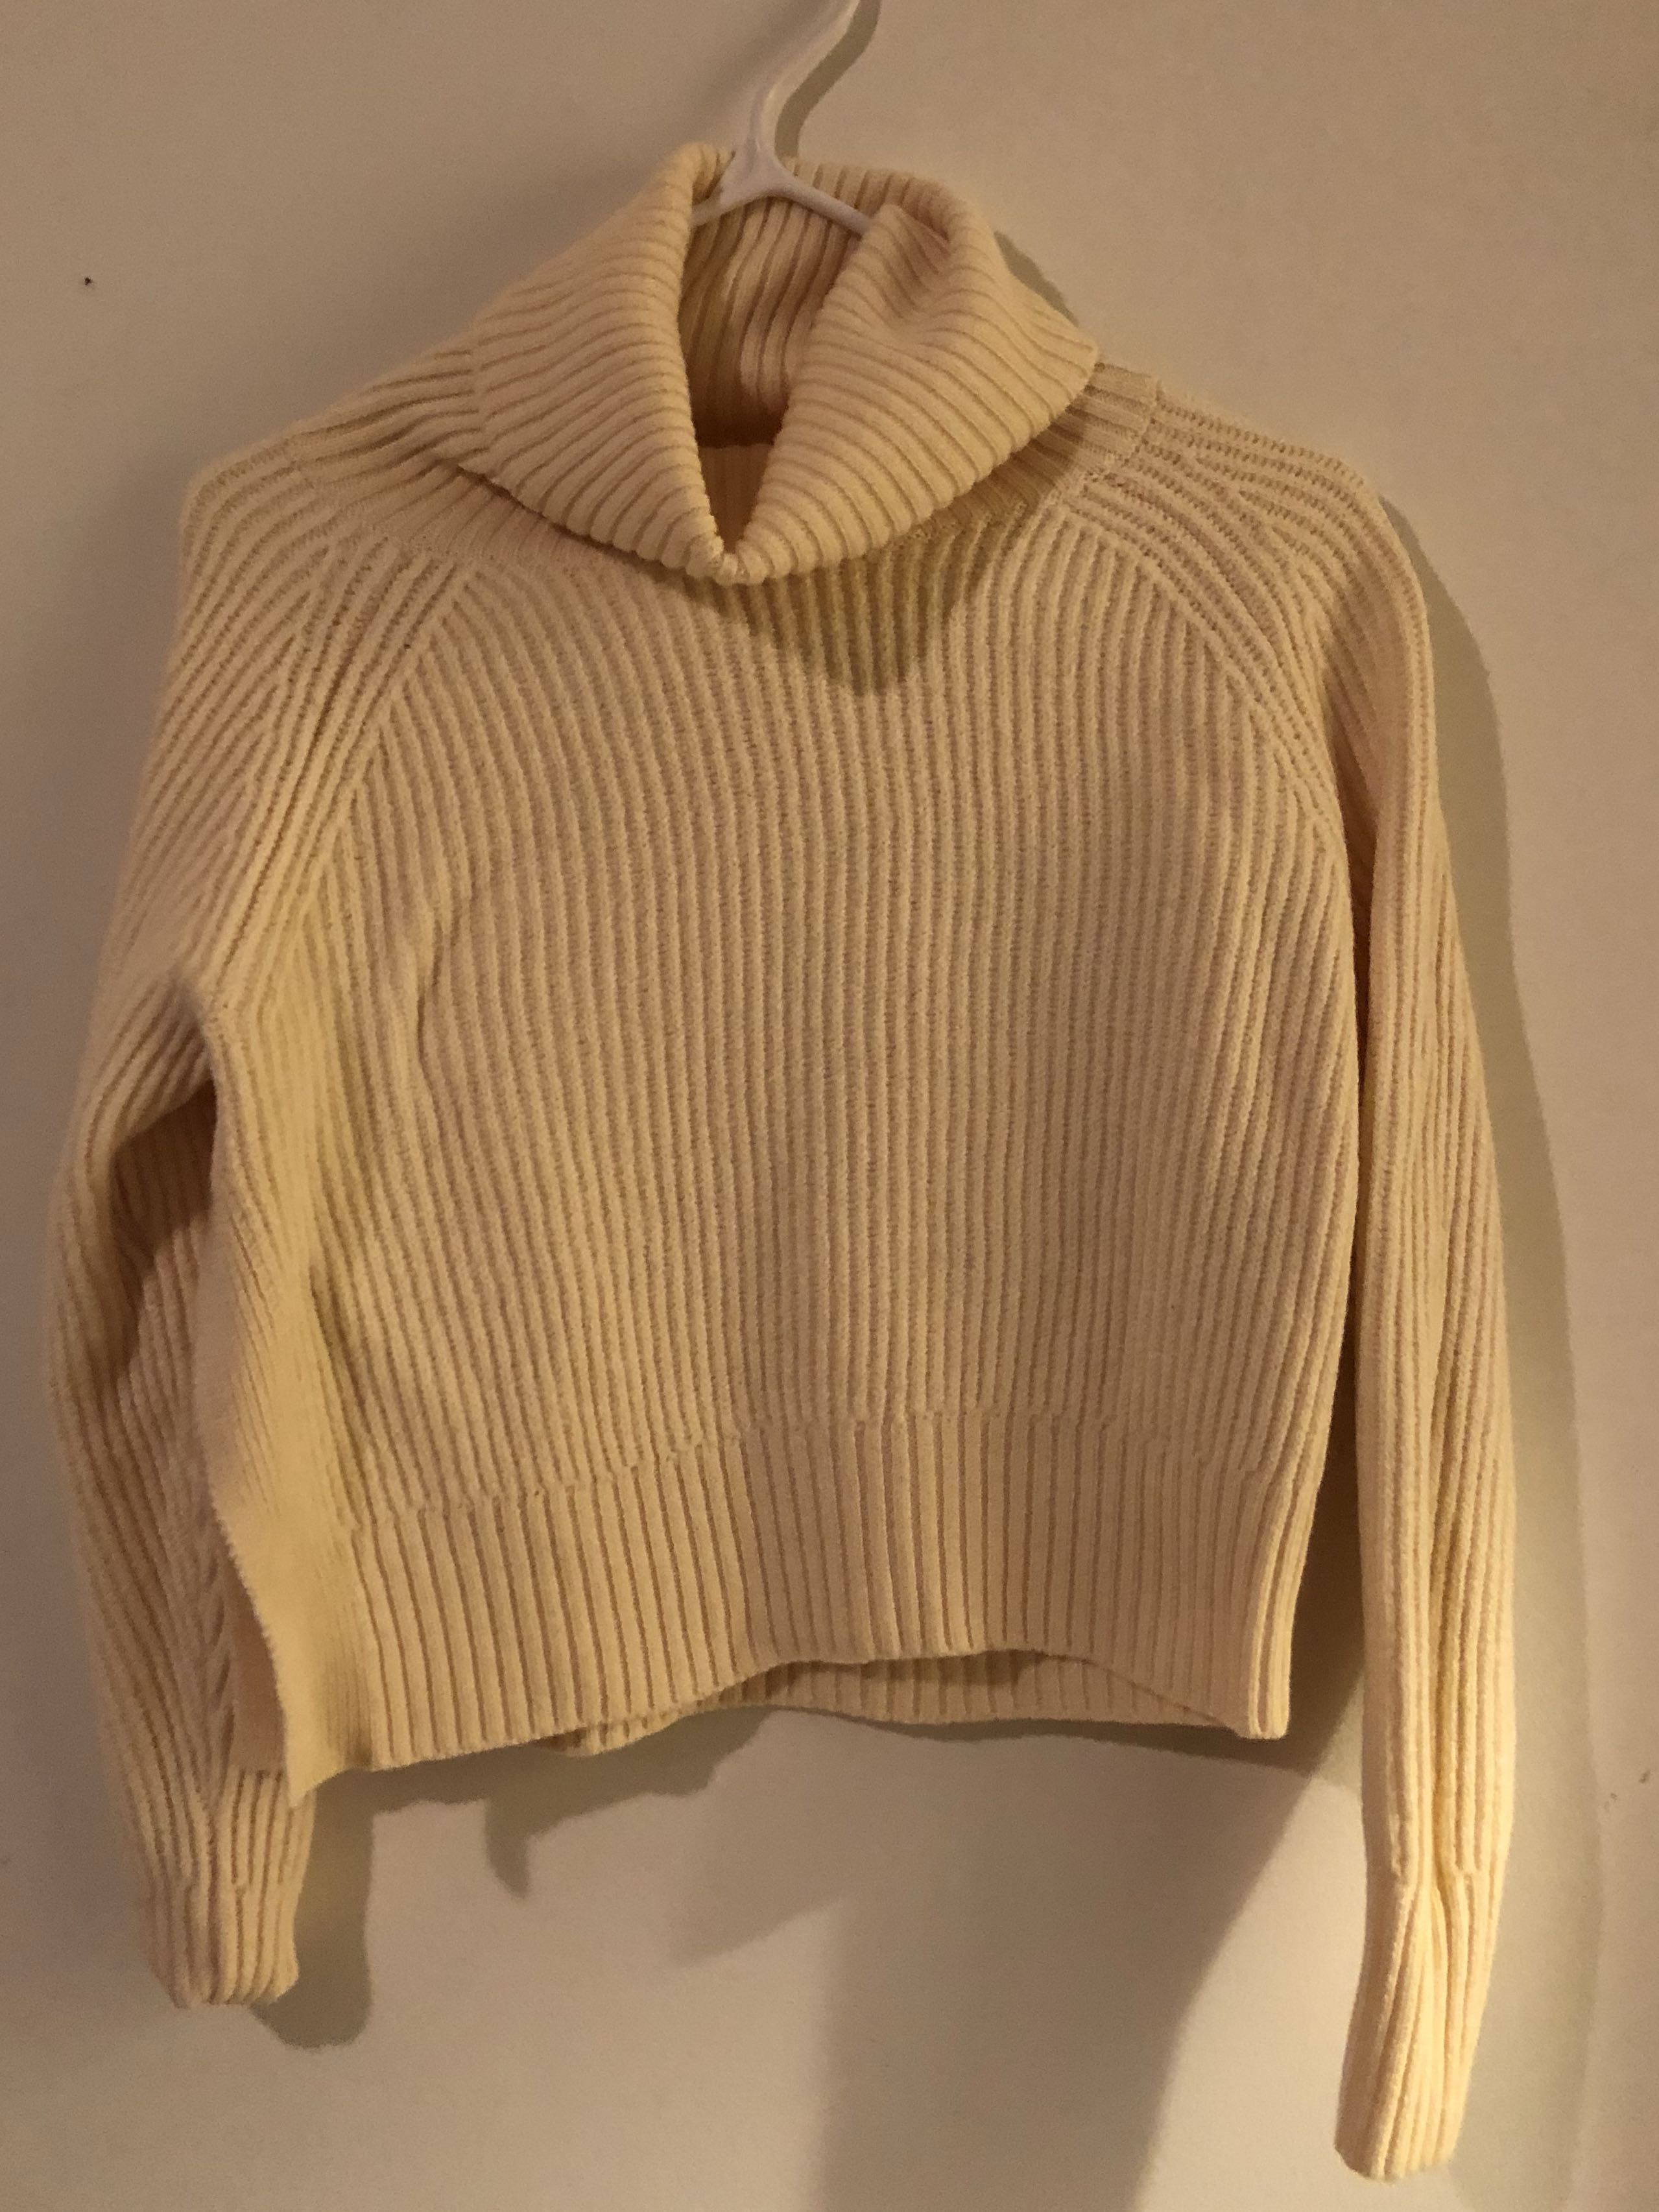 Cropped Turtleneck from Wilfred Free